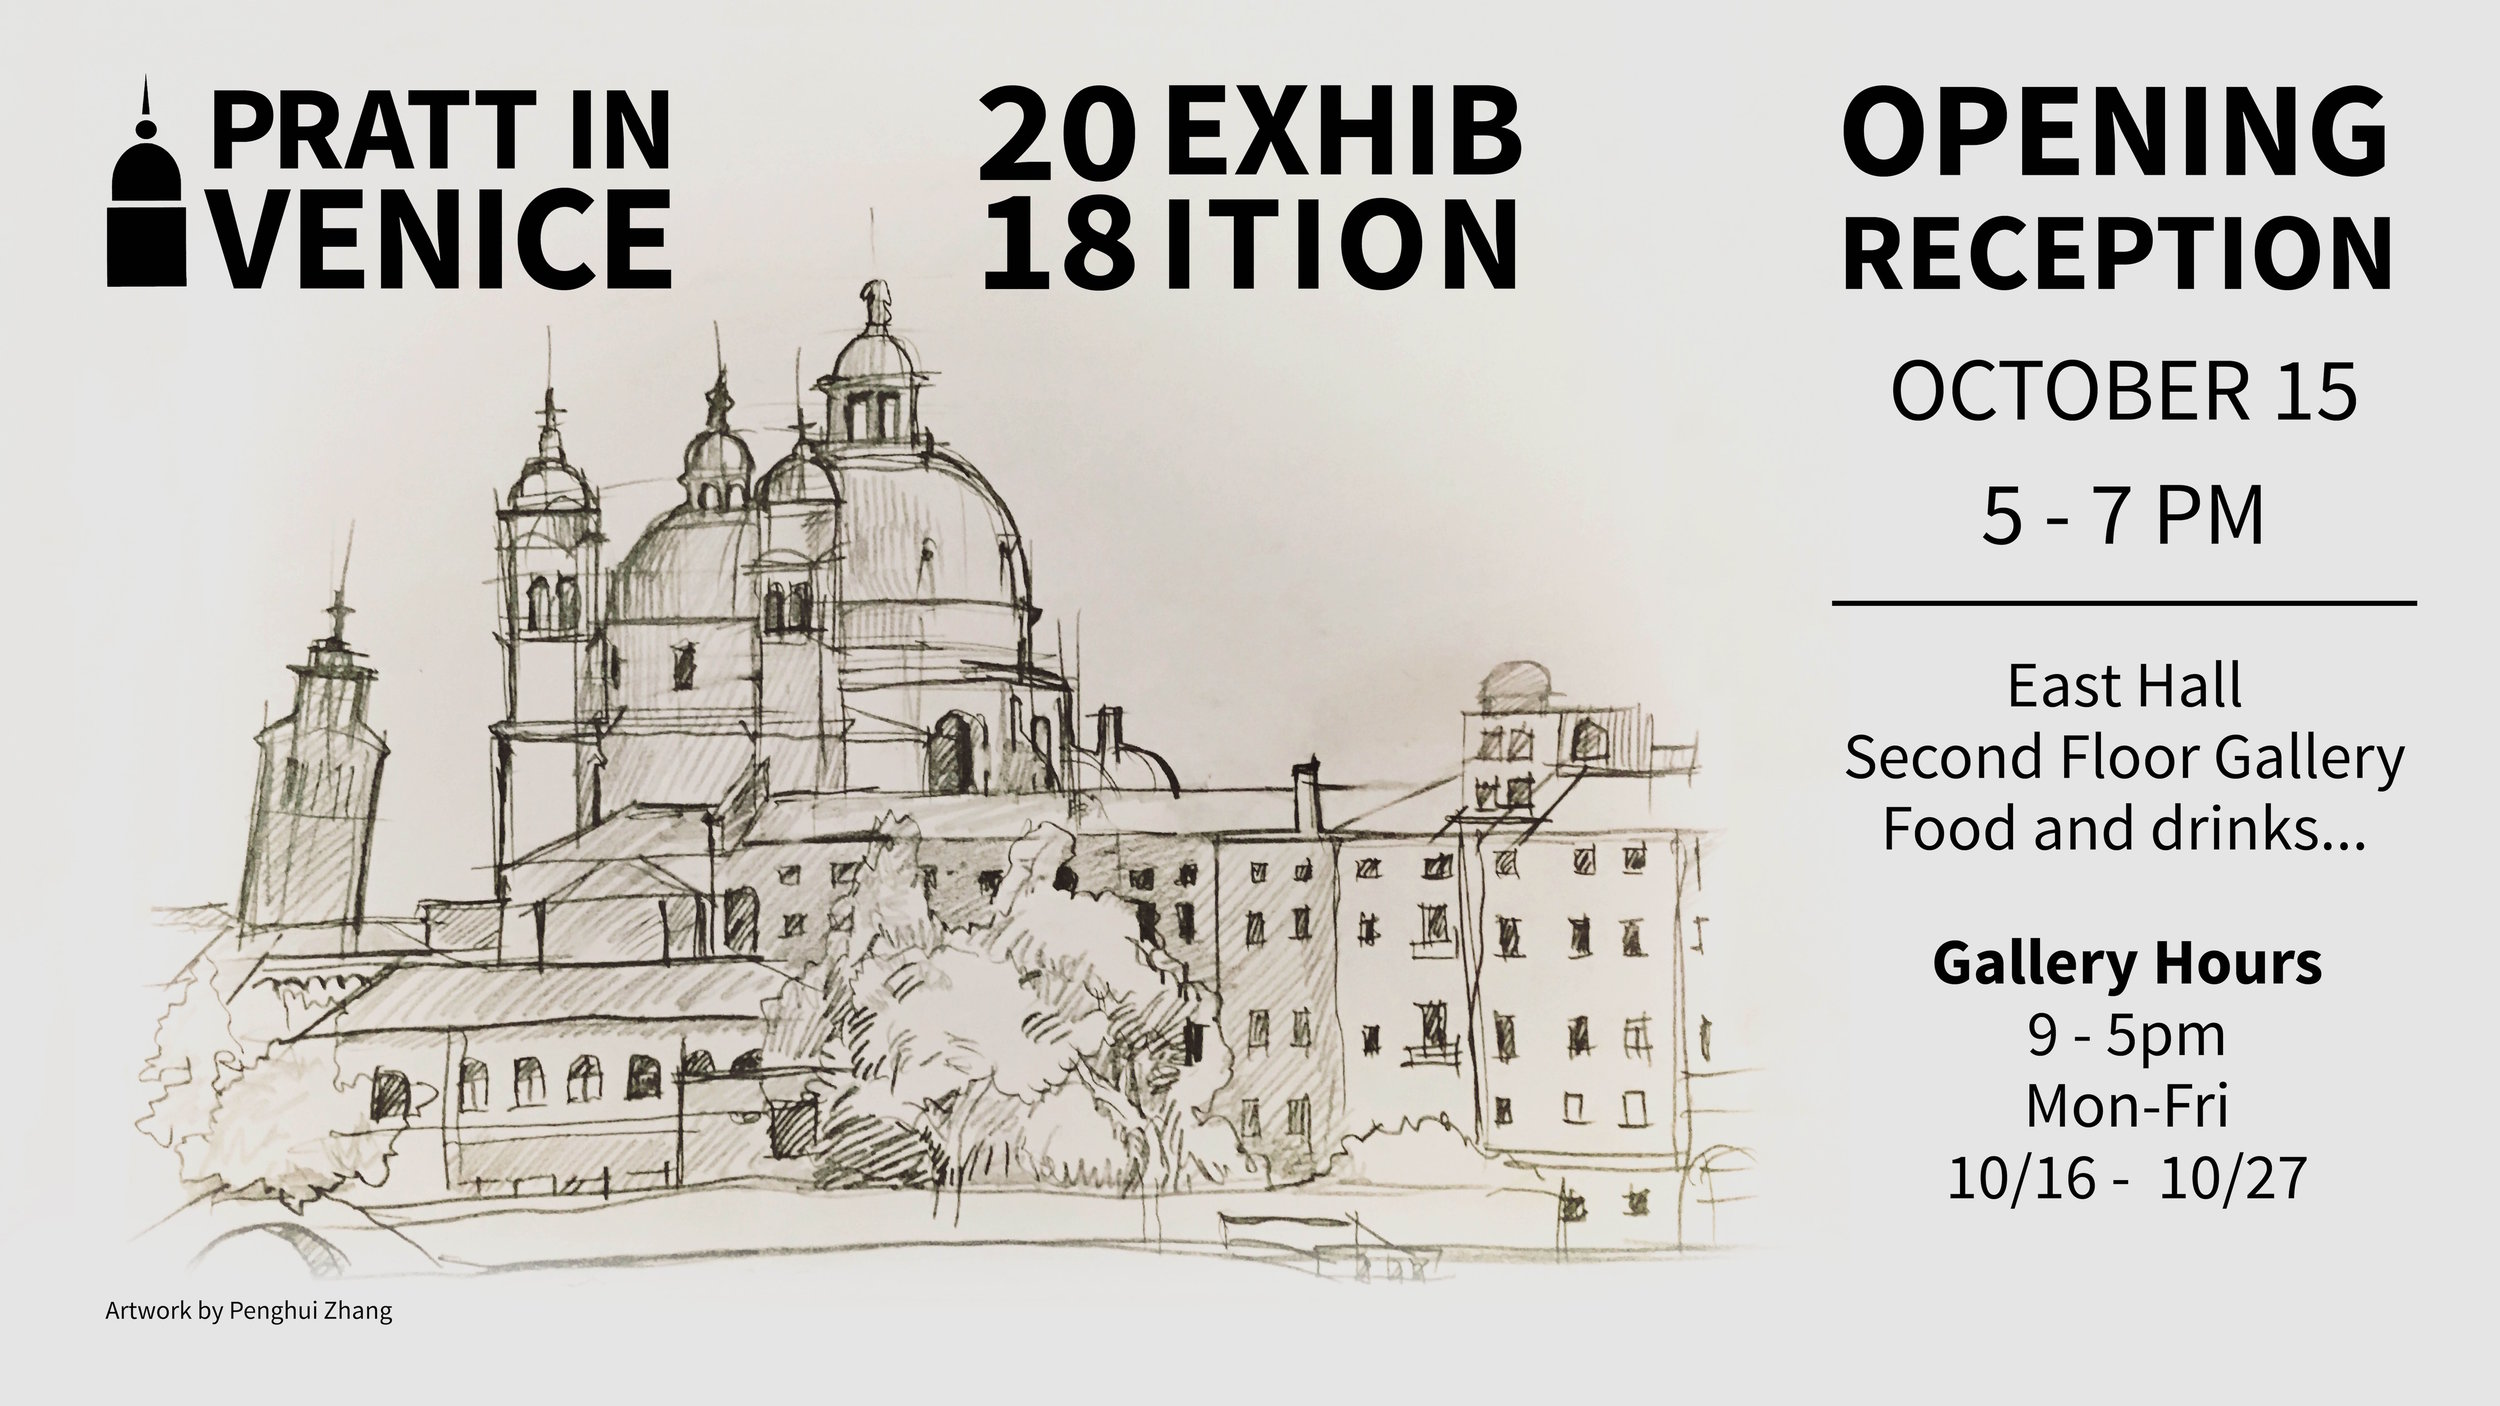 Our annual exhibition's poster featured a sketch of San Marco by Penghui Zhang!